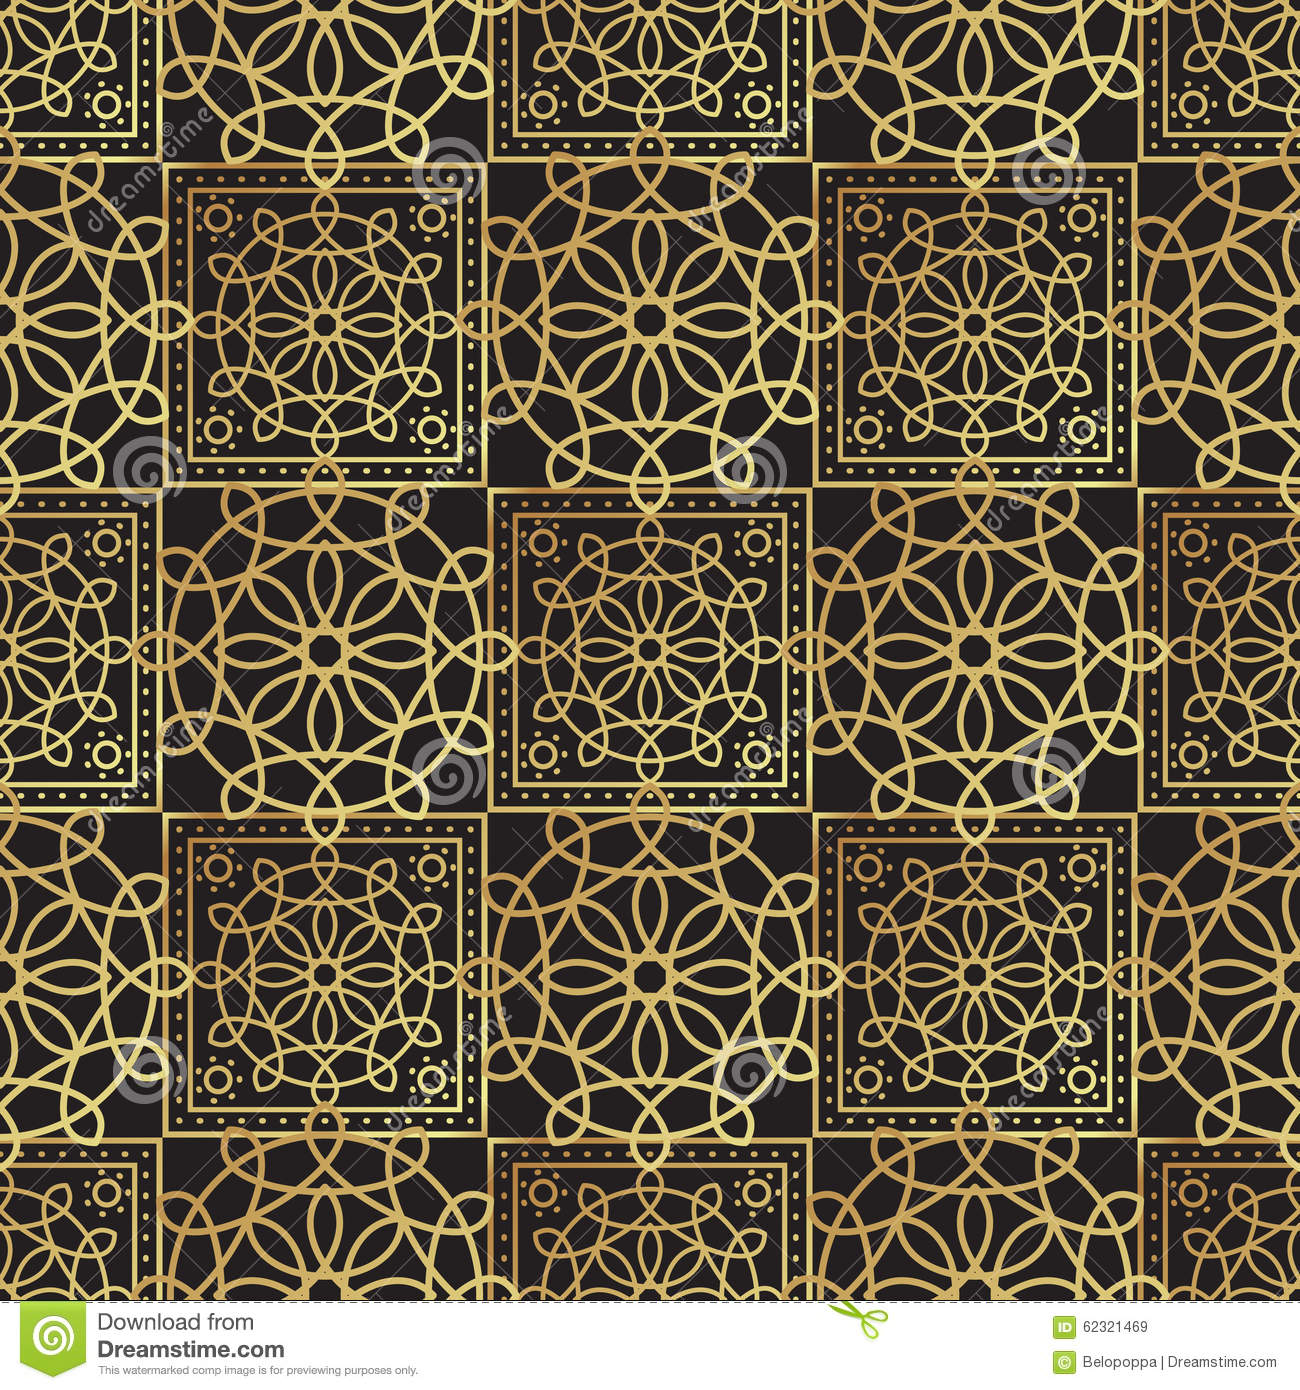 Galaxy Pattern in addition Stock Illustration Vintage Luxury Gold Background Art Deco Black Wallpaper Scrapbooking Prints Image62321469 in addition Livre Pliable 899220016804 as well 10 Contemporary Bathroom Sinks That Will Make Your Day also Royalty Free Stock Photo Australian Pattern Image12876725. on art deco patterns